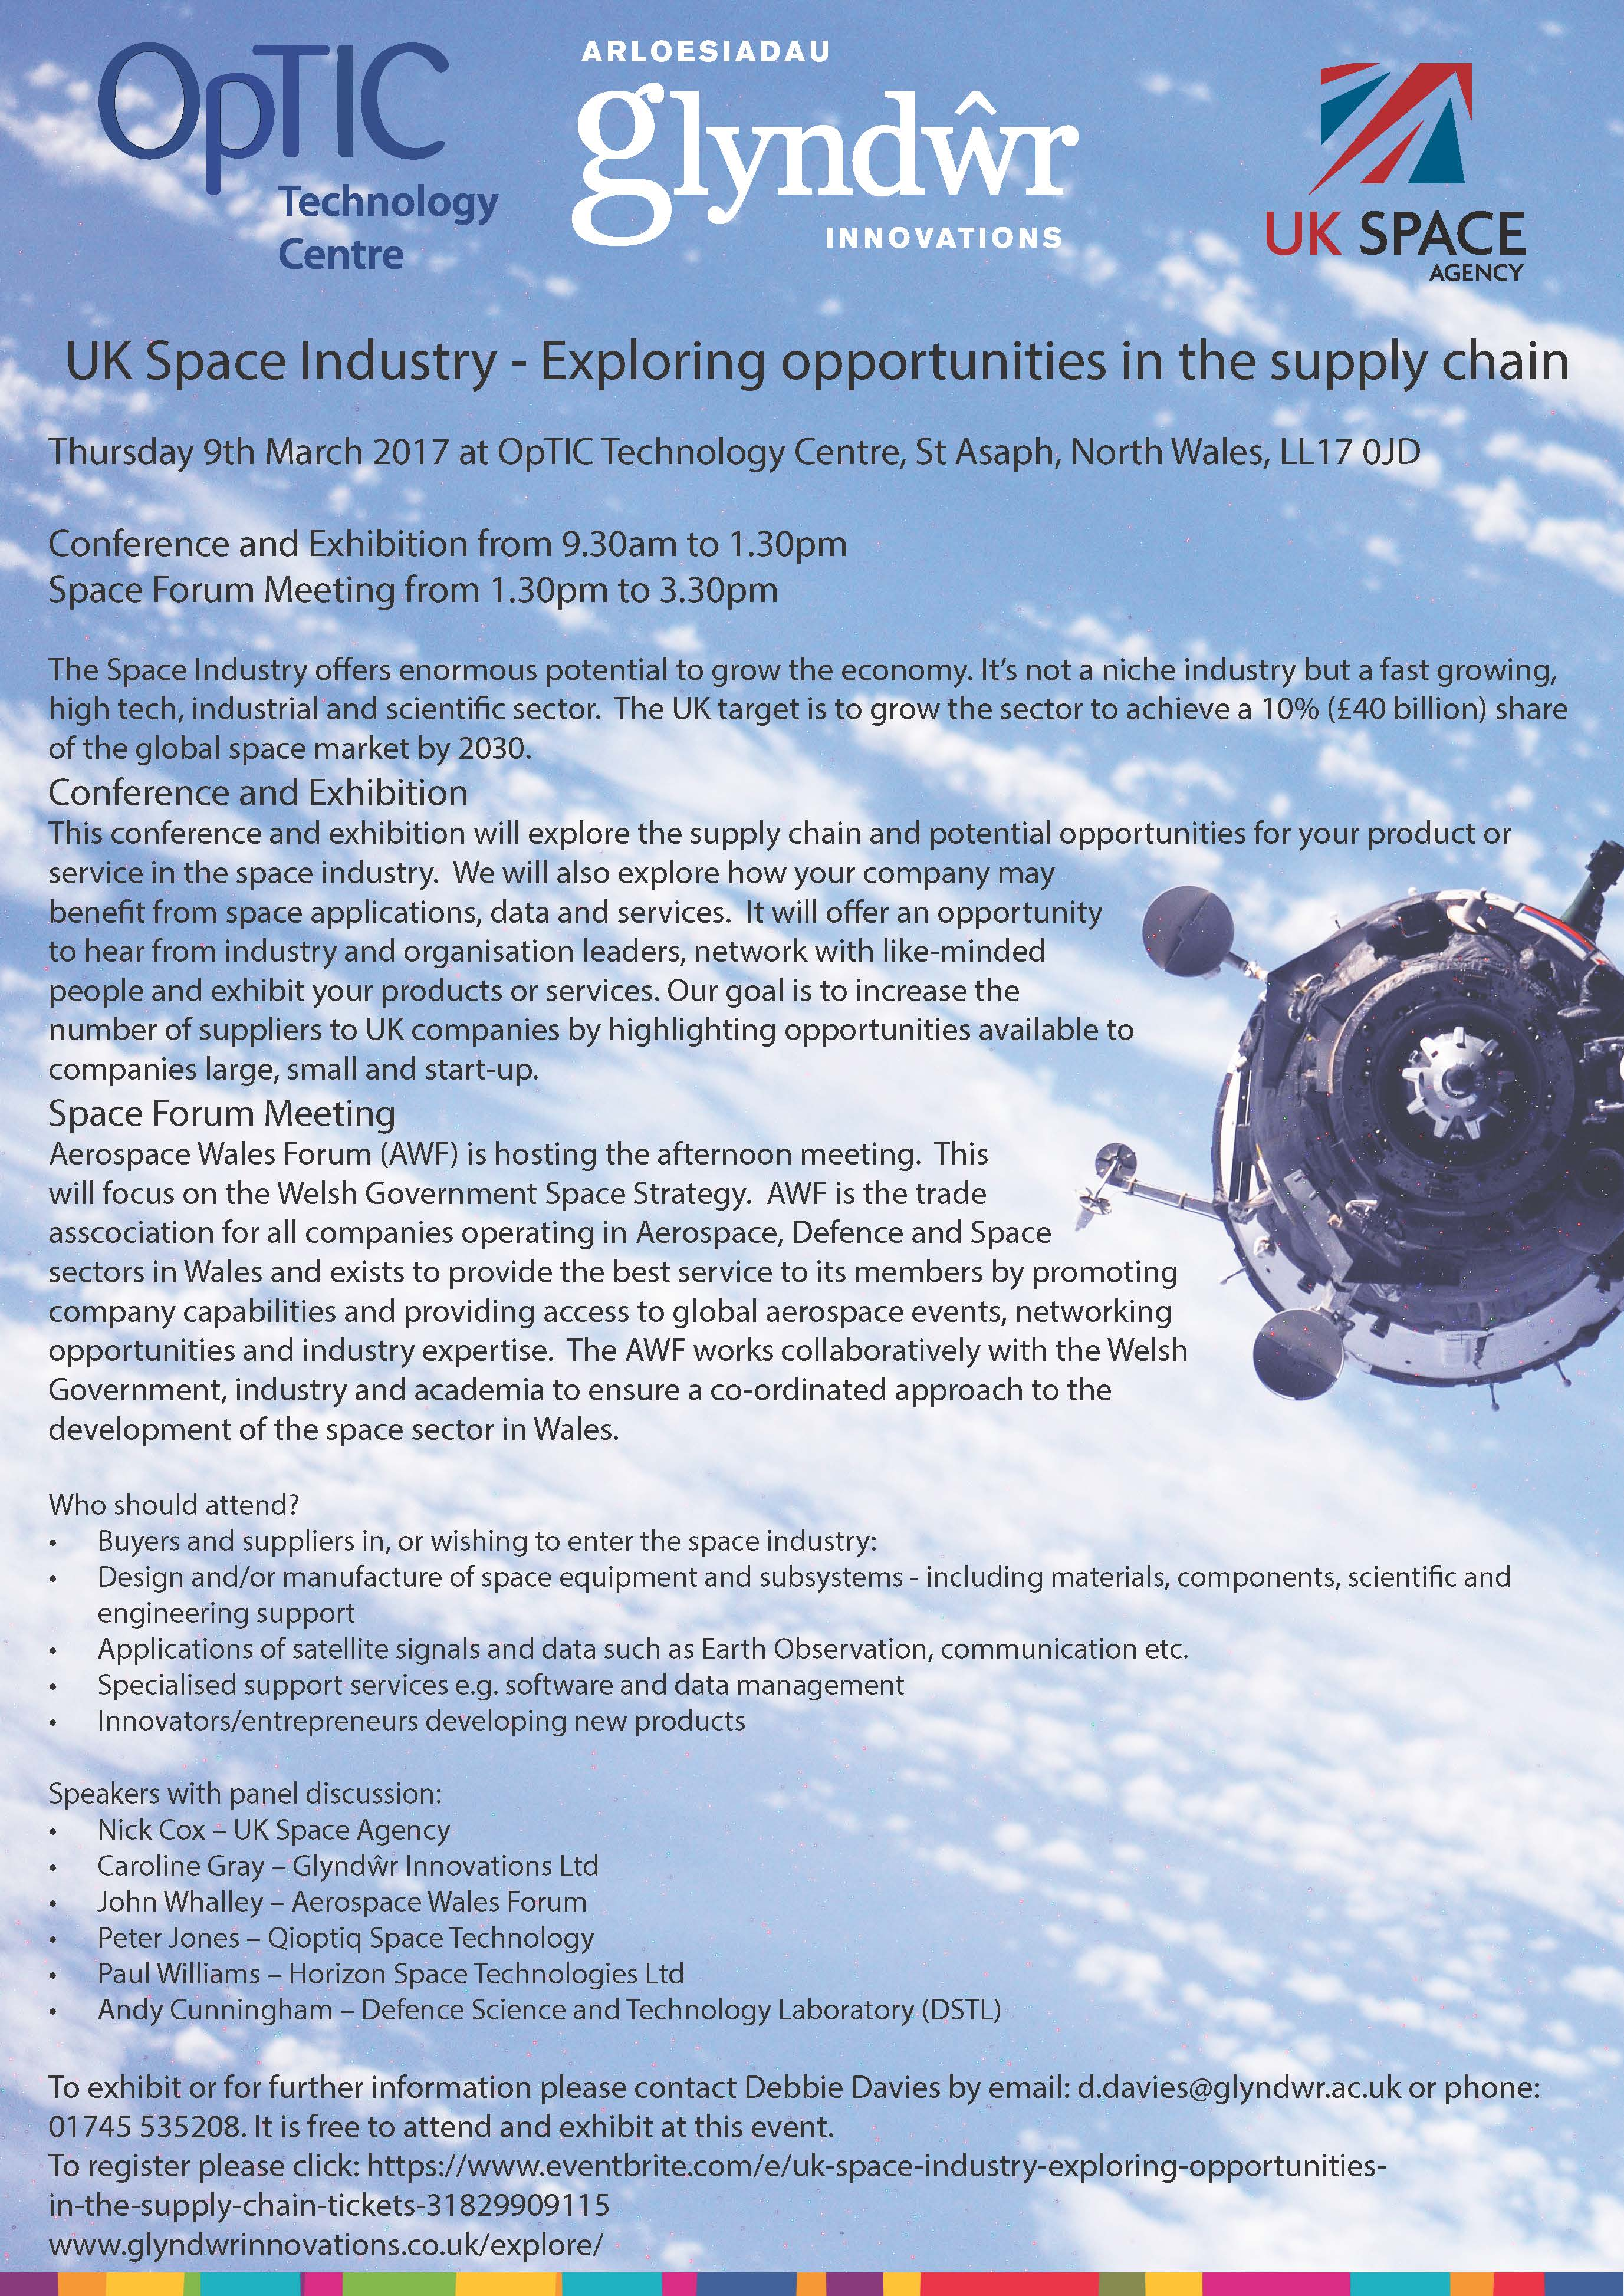 Glyndwr Innovations to host an Exploring the Supply Chain